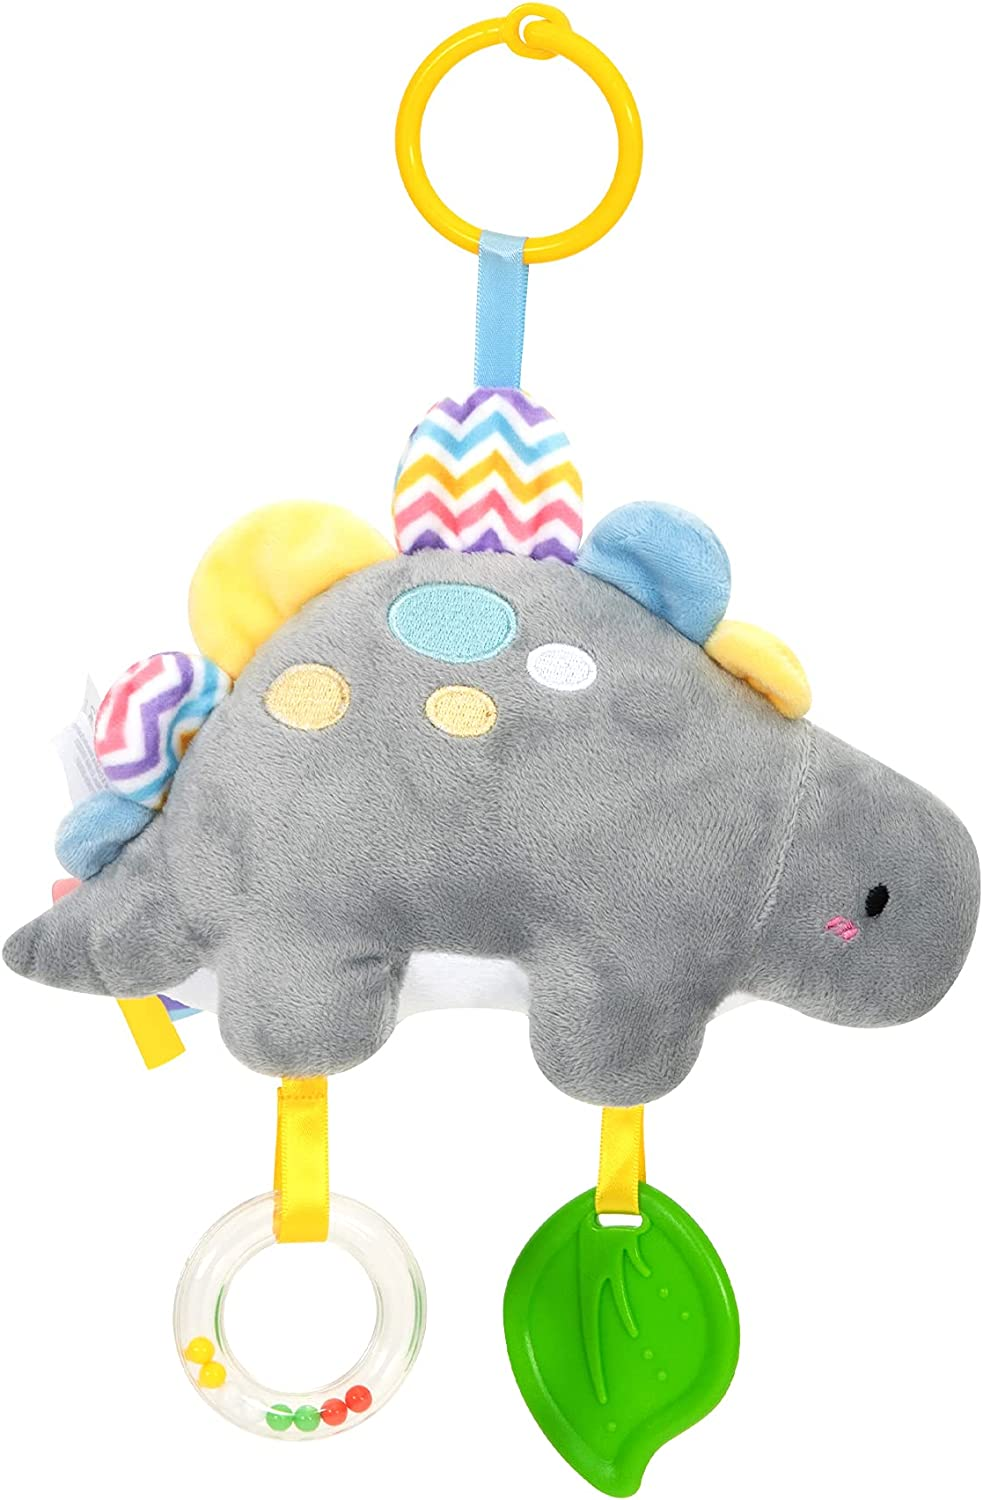 TILLYOU Baby Car Toys & Stroller Toys, Baby Car Seat Toys,Stroller Toys for Baby Boys,Plush Stuffed Gray Dinosaur Animals with Teethers,Clacking Ring and Colorful Ribbons, Activity Toys (Dinosaur)